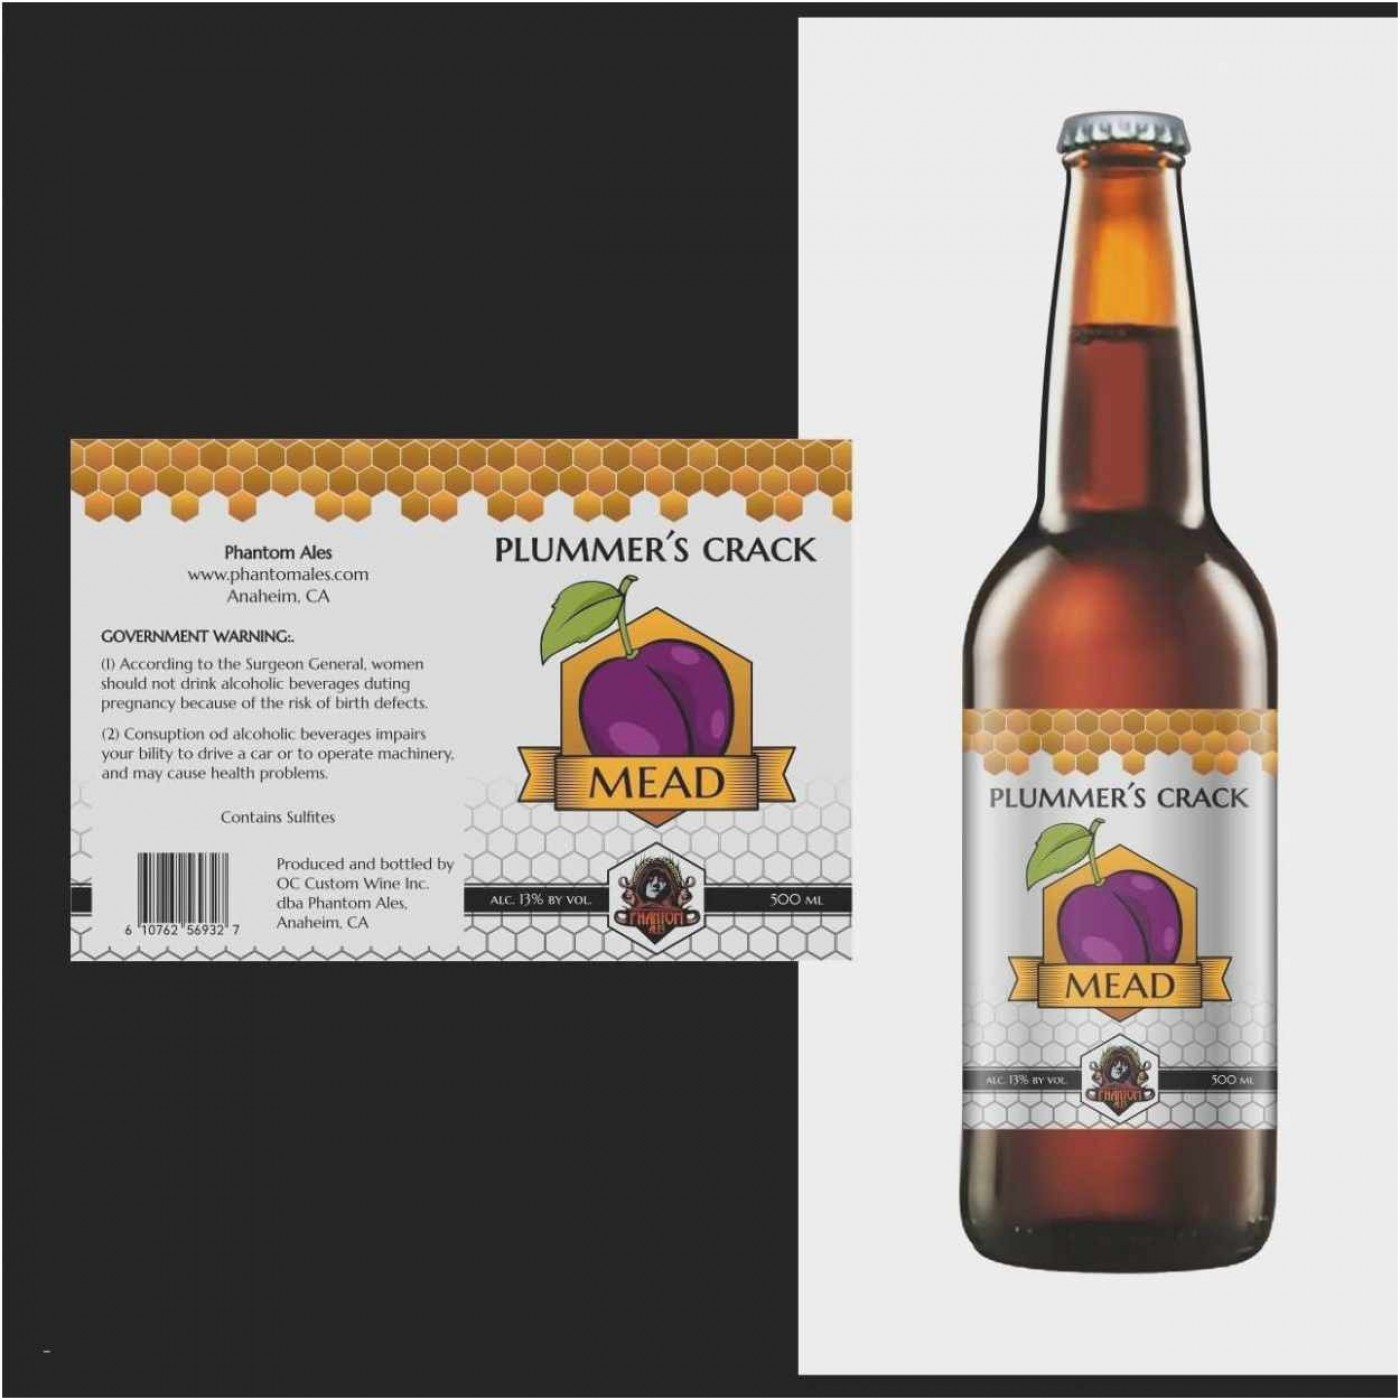 002 Incredible Microsoft Word Beer Bottle Label Template Photo 1400